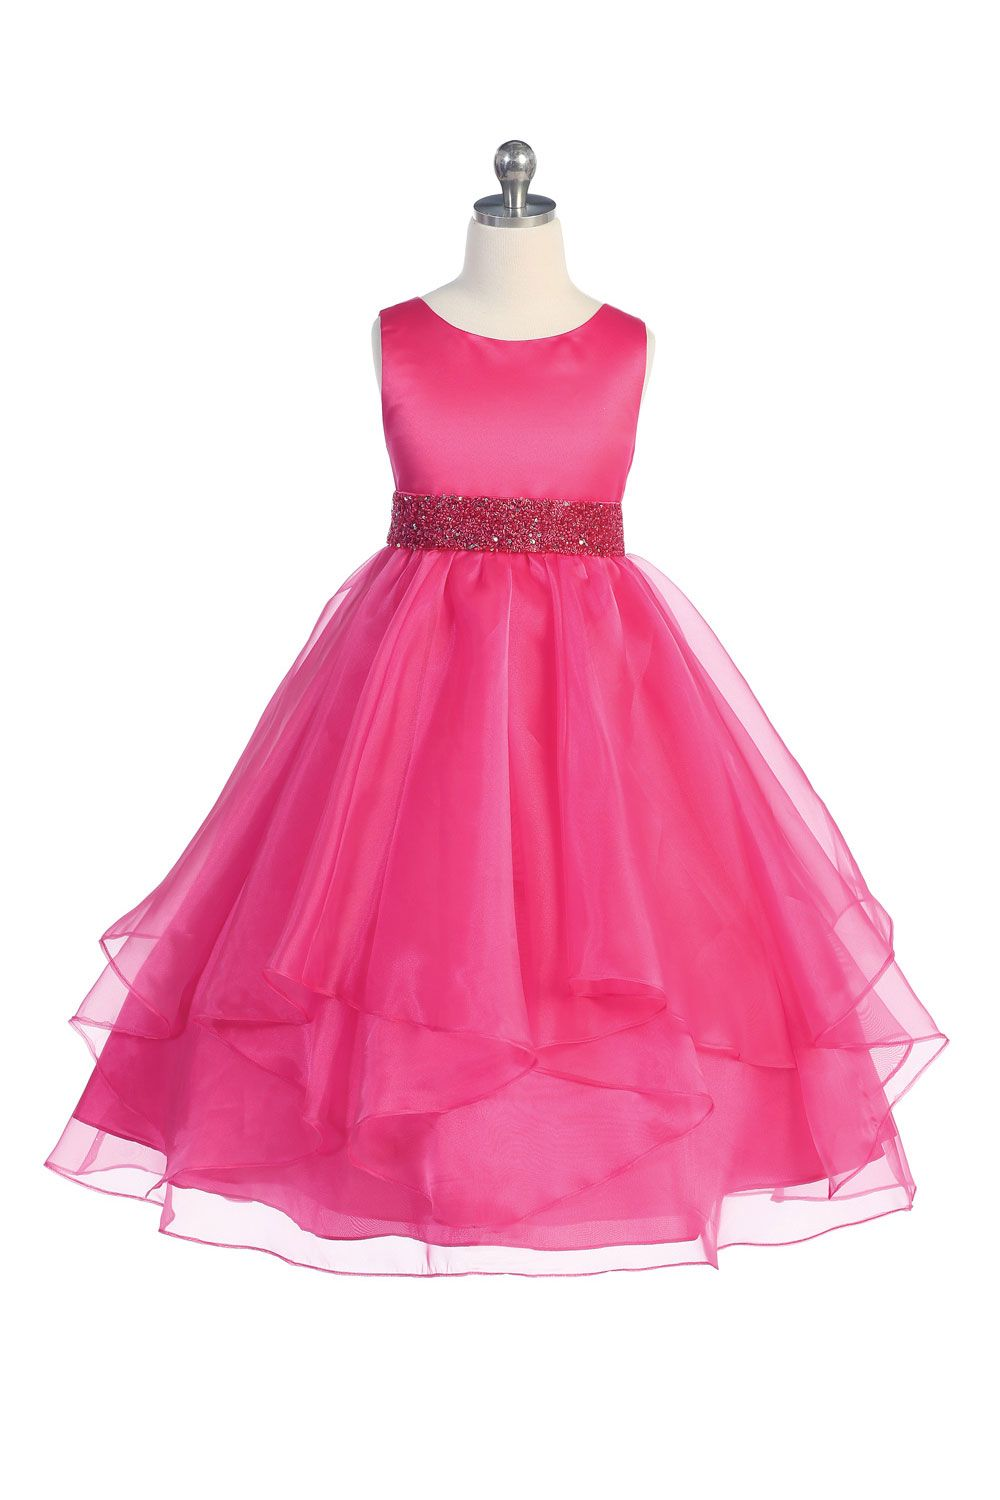 738561ebd9e6 Fuchsia Satin and Organza Layered Flower Girl Dress